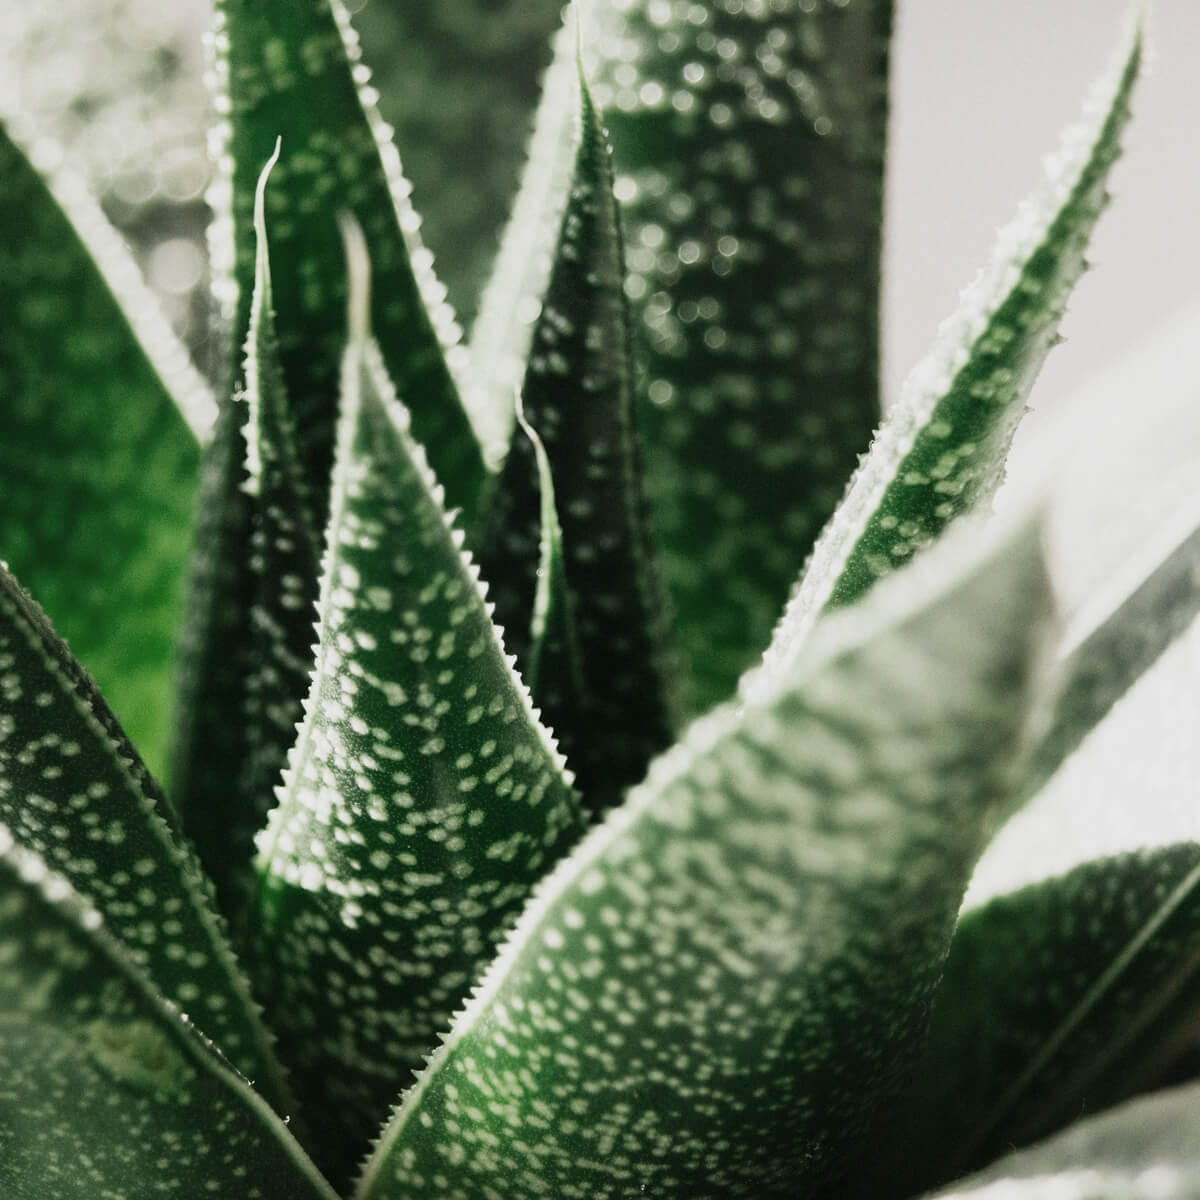 How to Use Aloe Vera for Acne: 6 Ways to Get Clear Skin